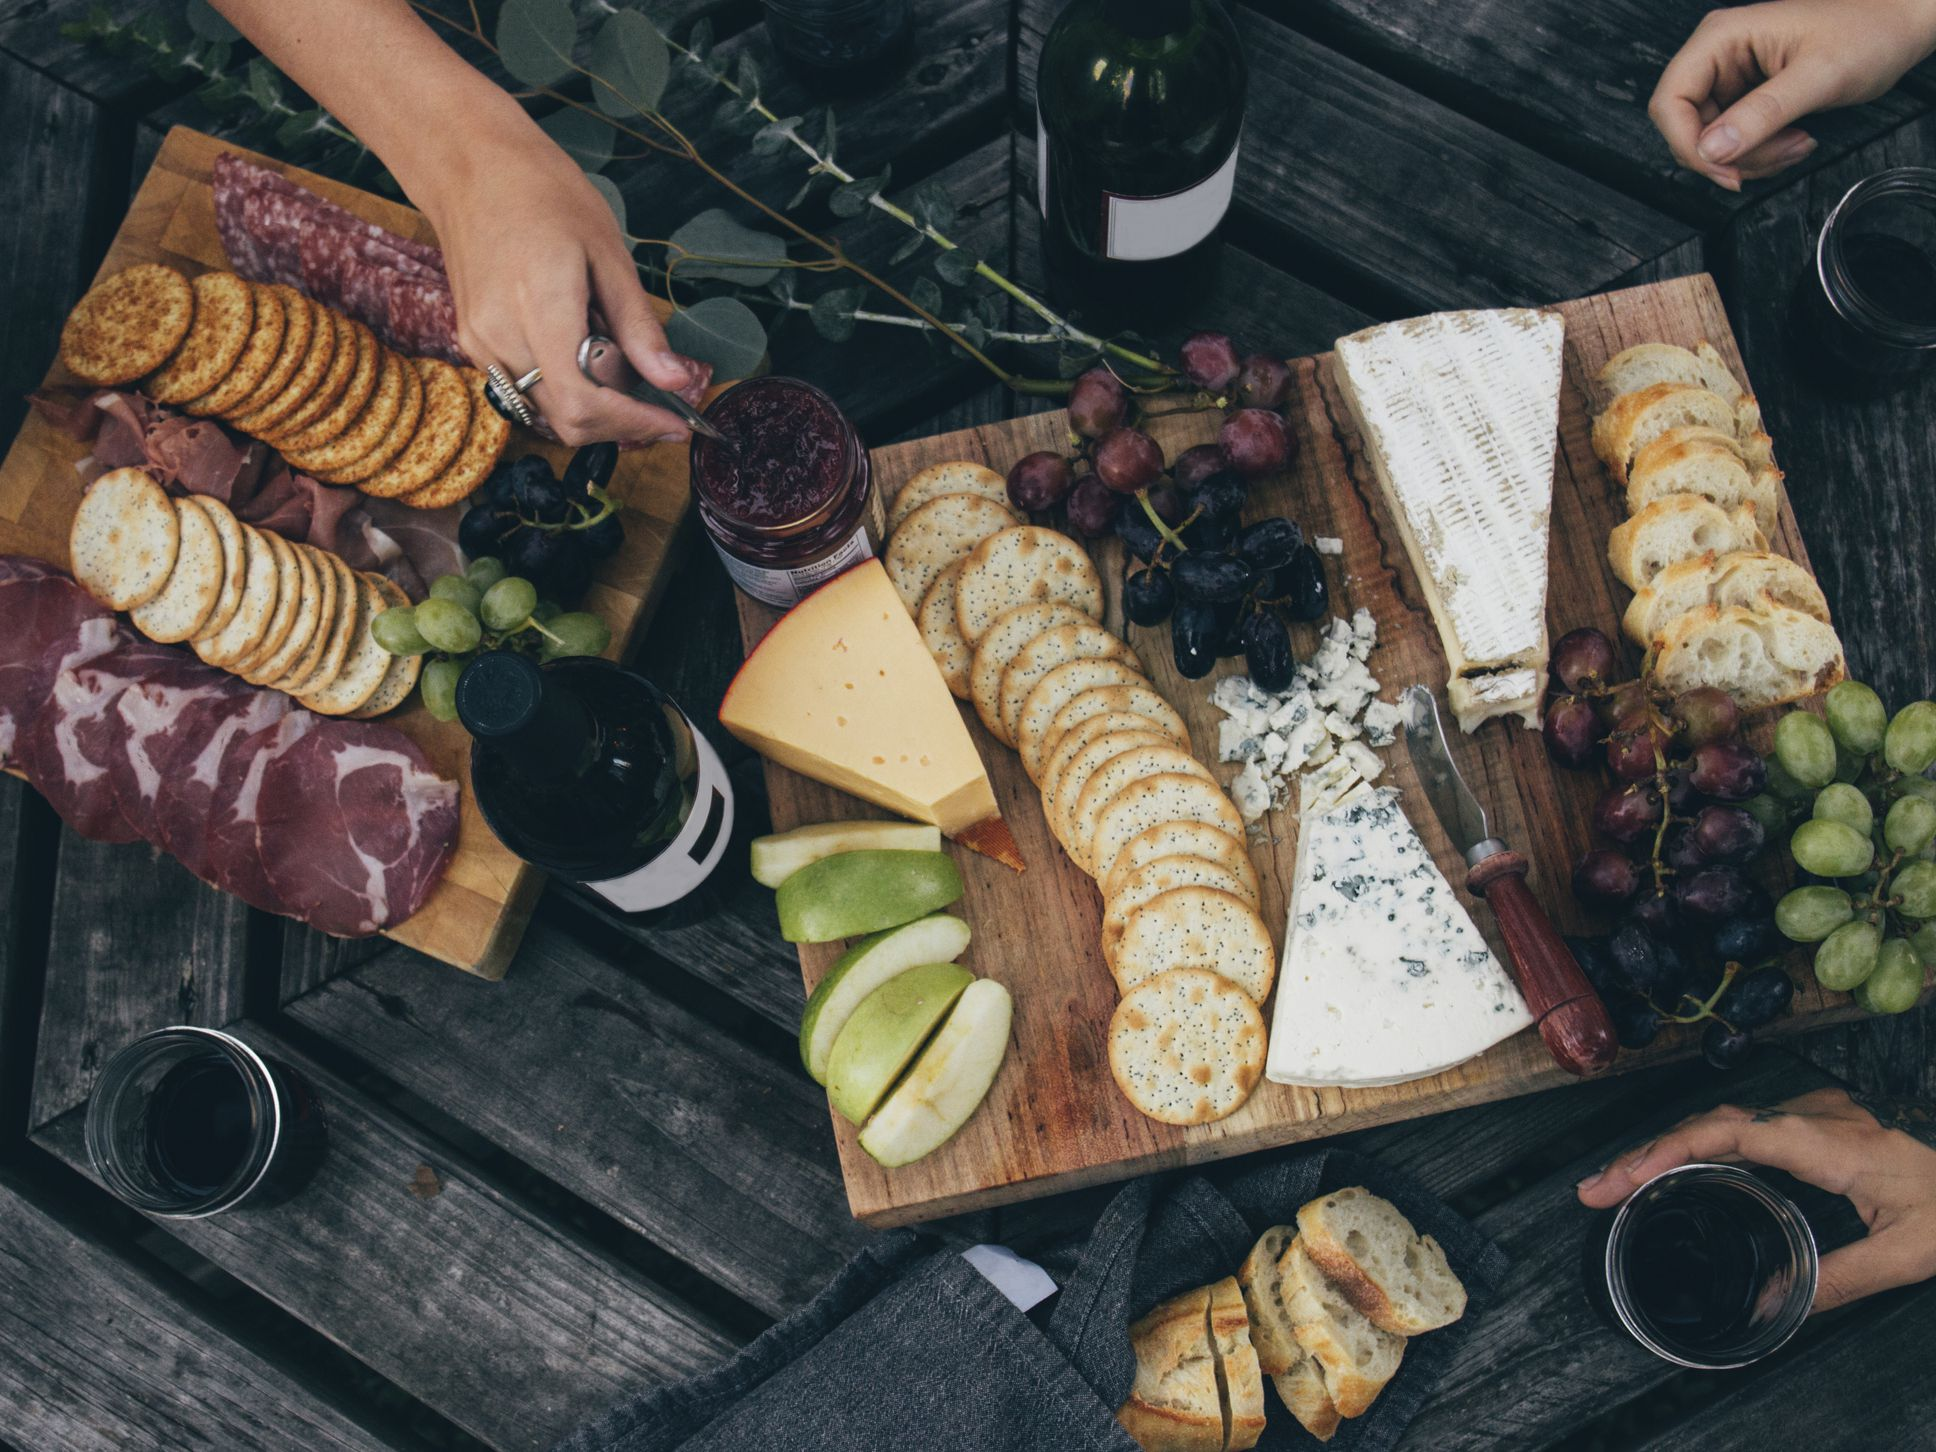 Pairing wines with cheese best options